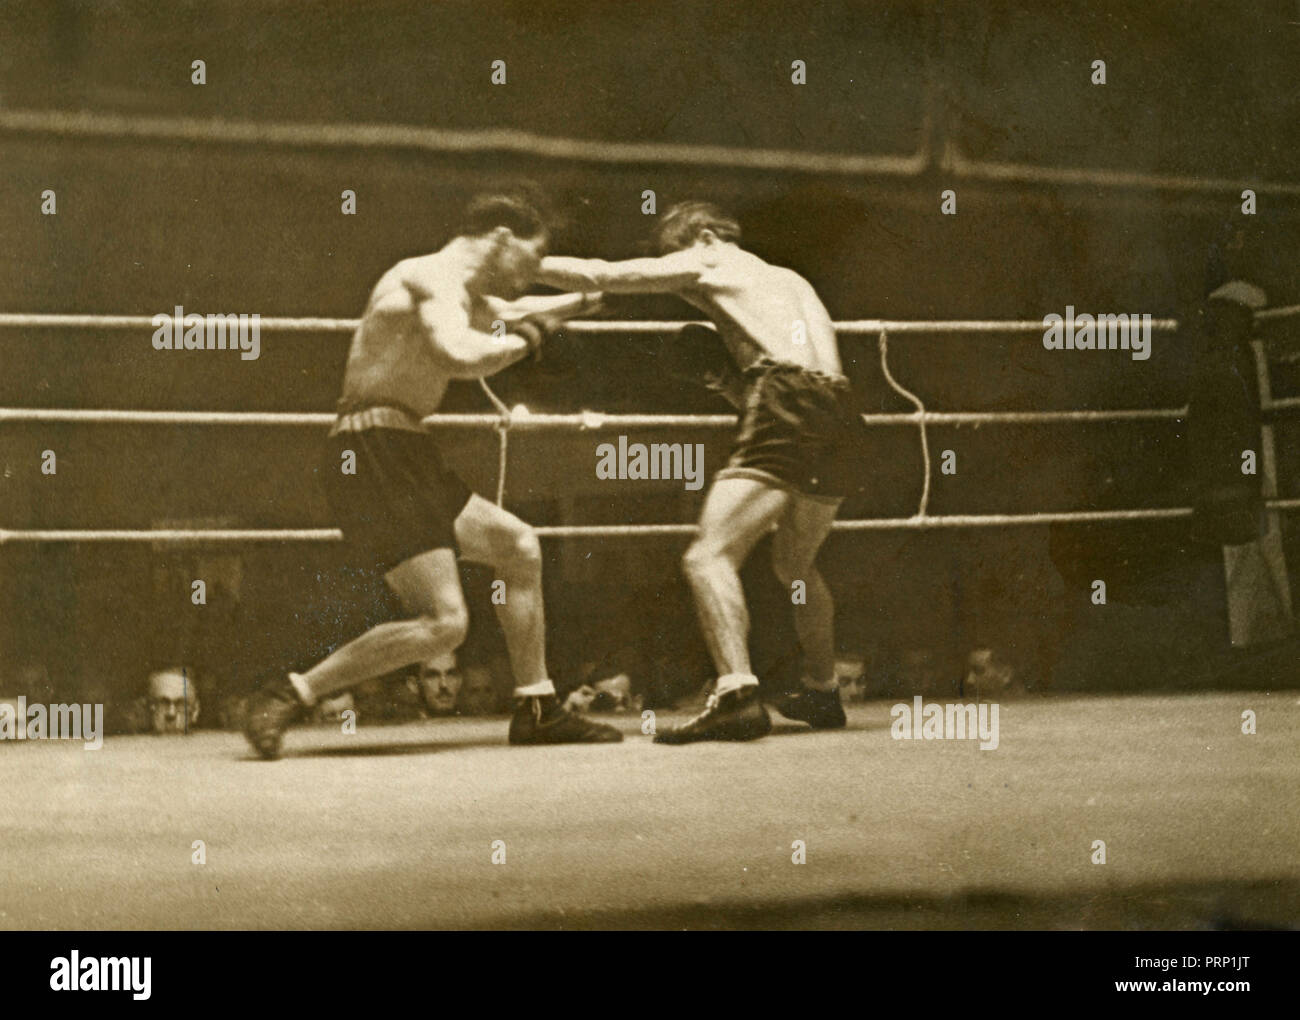 Boxing match between Gustavo Ansini and Hans Schiller, Berlin, Germany 1937 - Stock Image